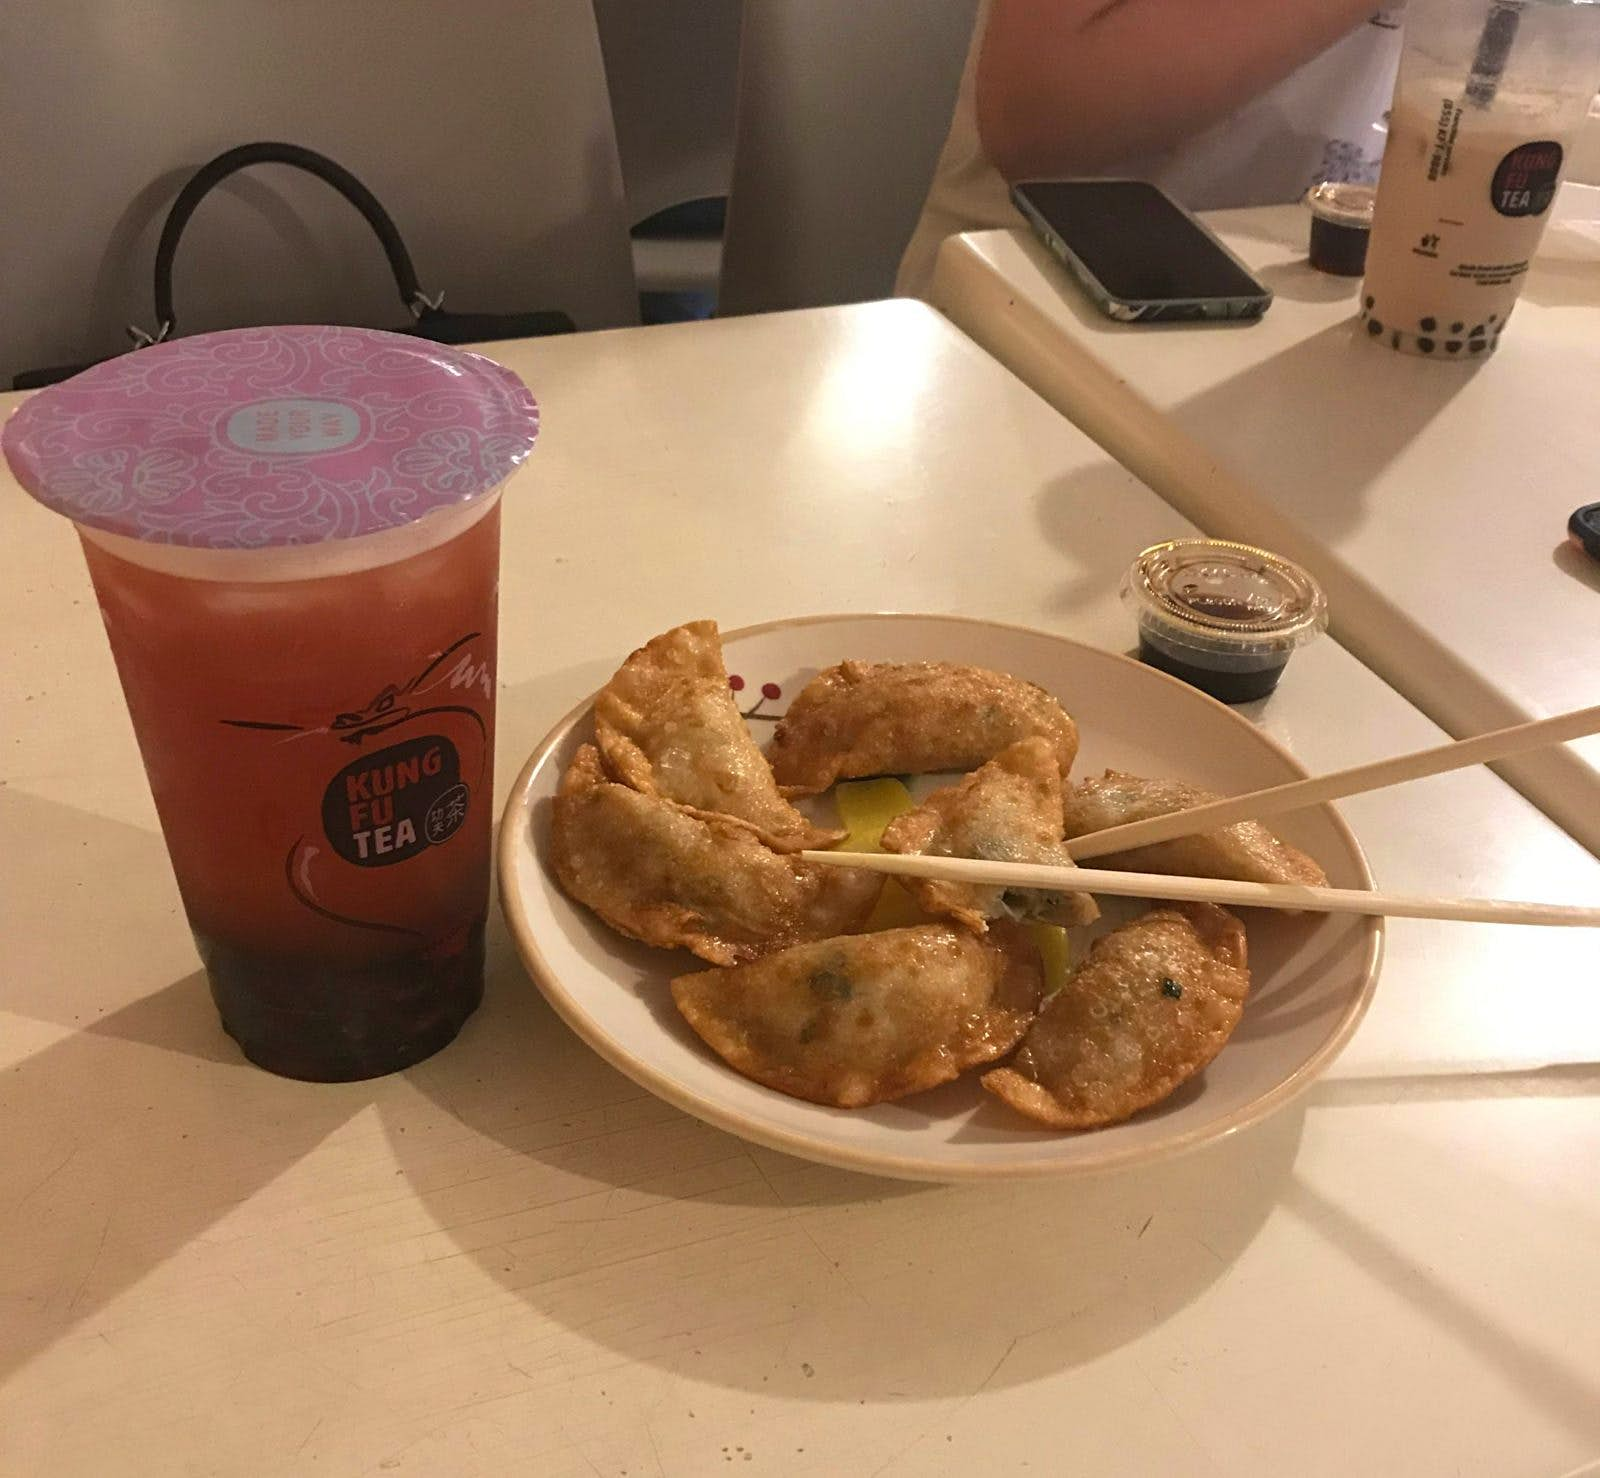 A strawberry green bubble tea from Kung Fu Tea, accompanied by some fried chicken dumplings.